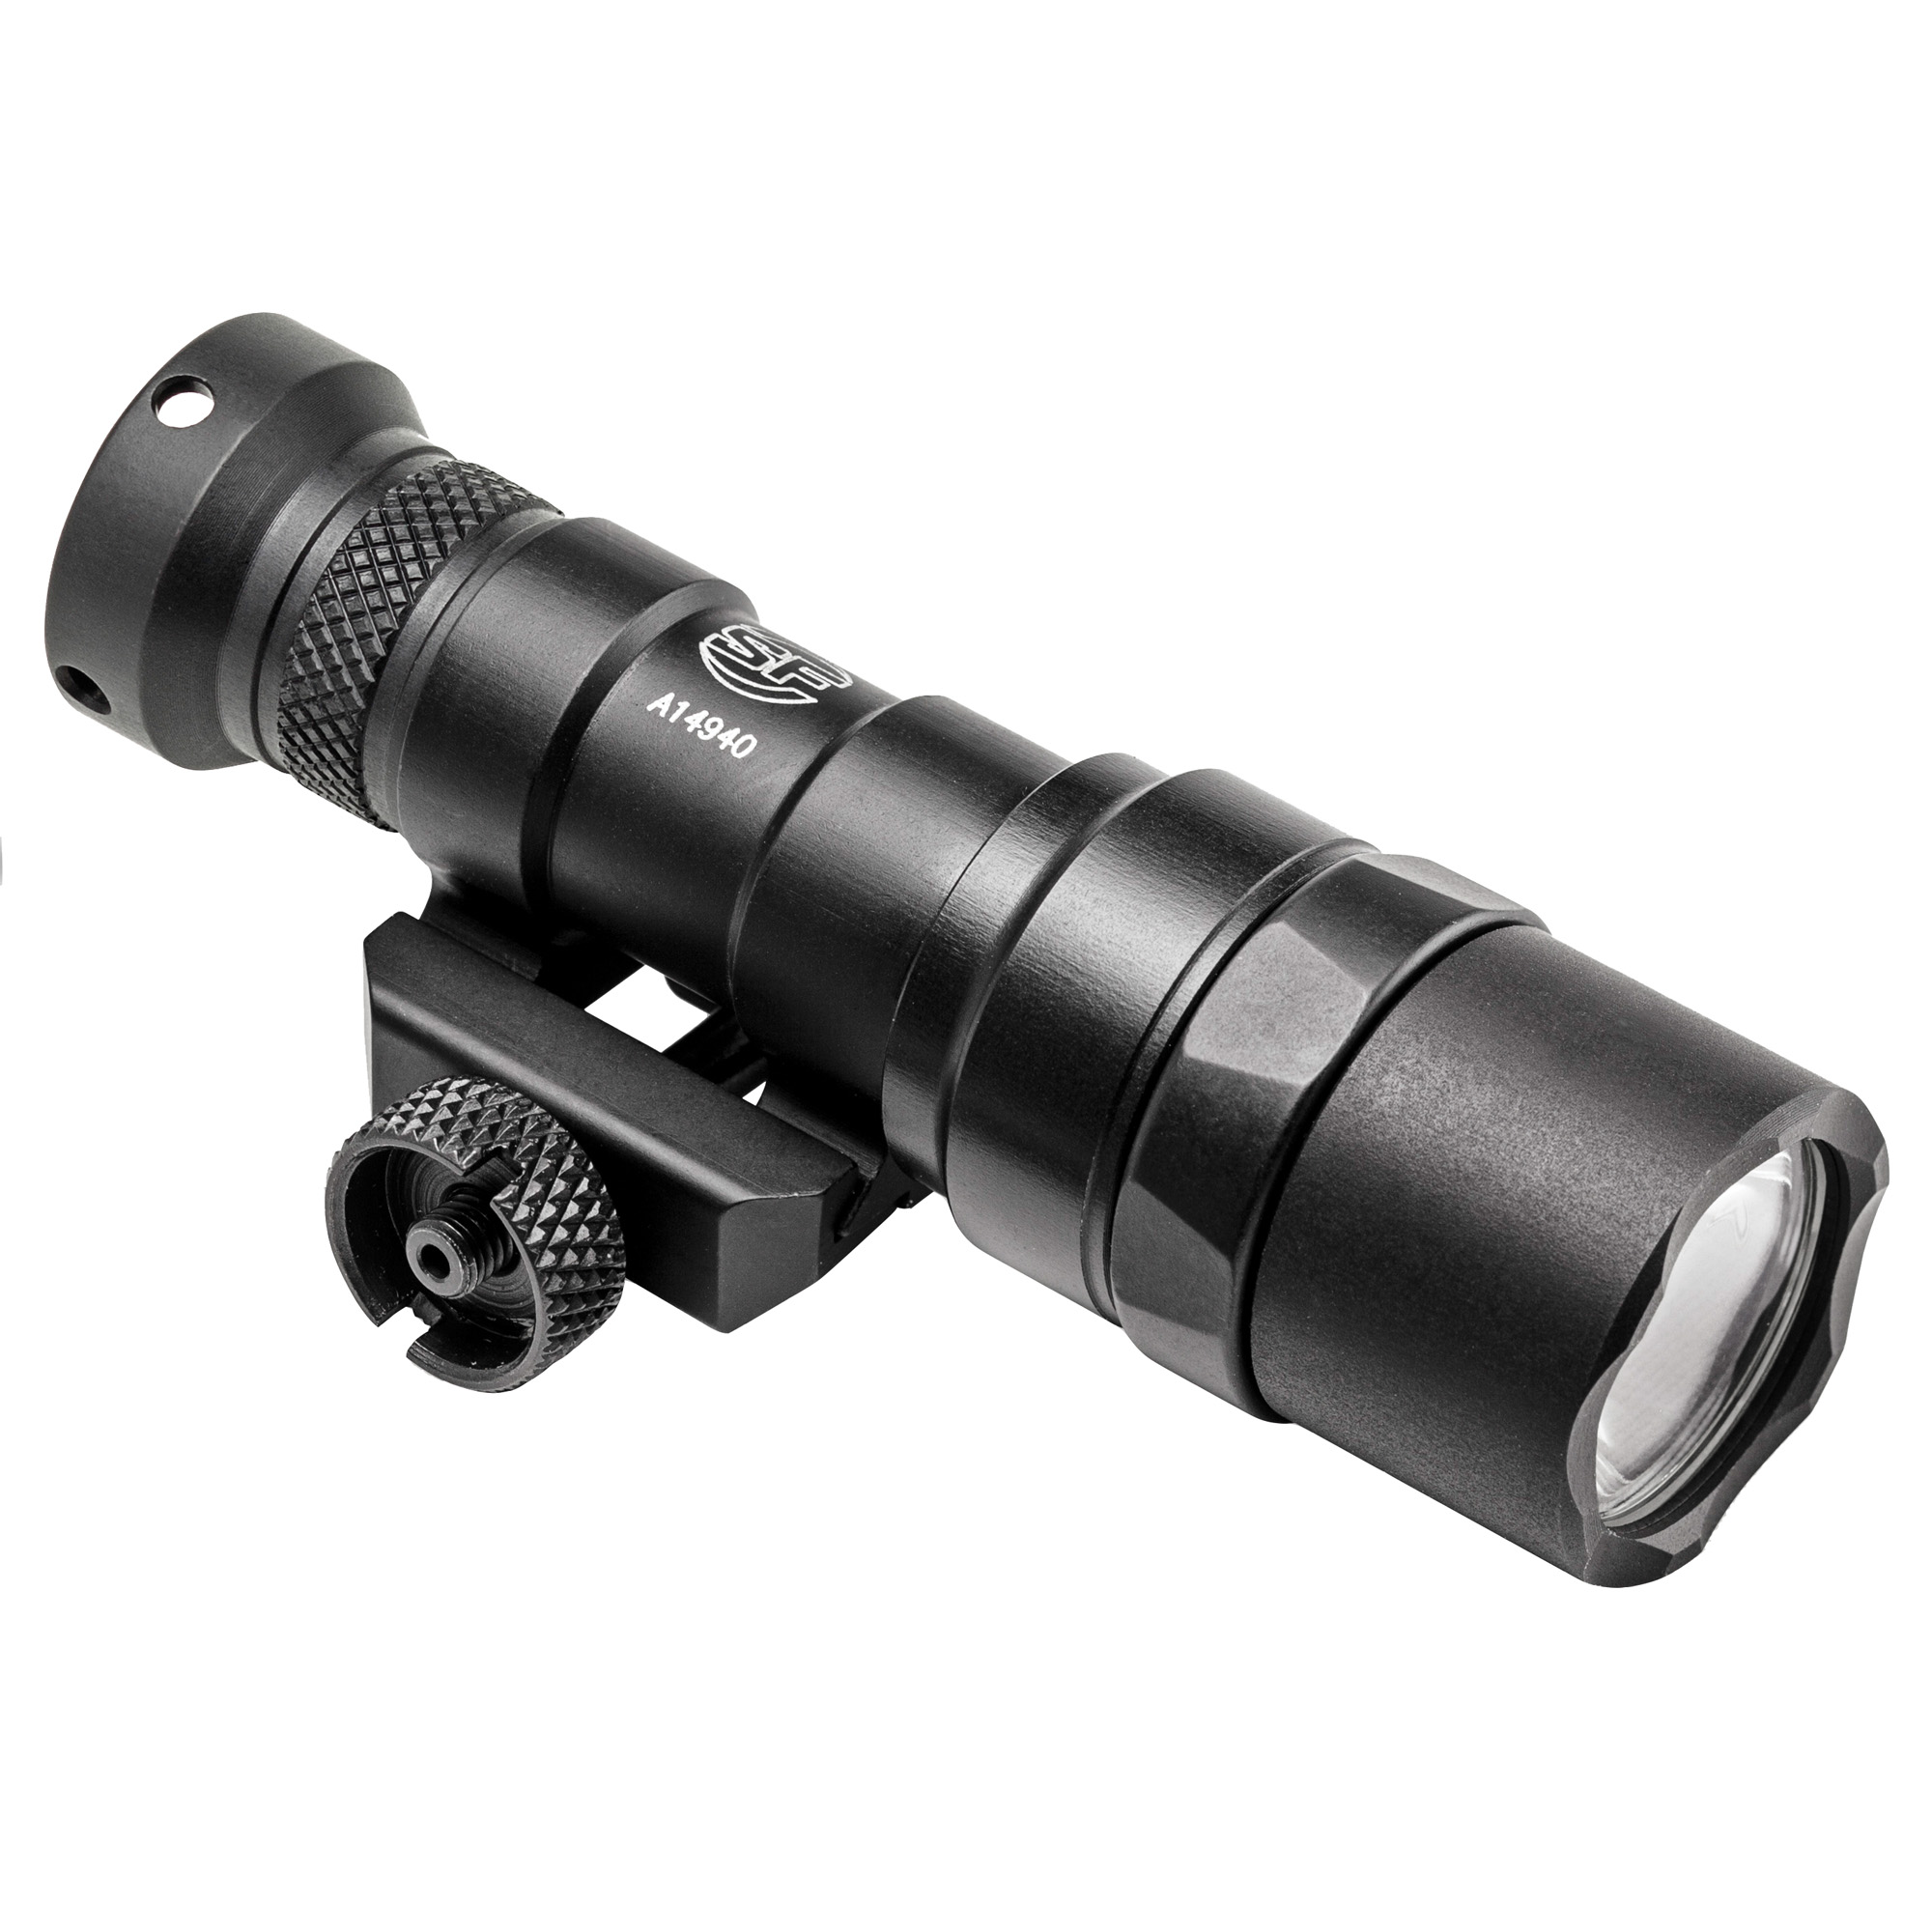 SUREFIRE M300c Mini Scout WEAPON LIGHT 500 Lumens BLACK